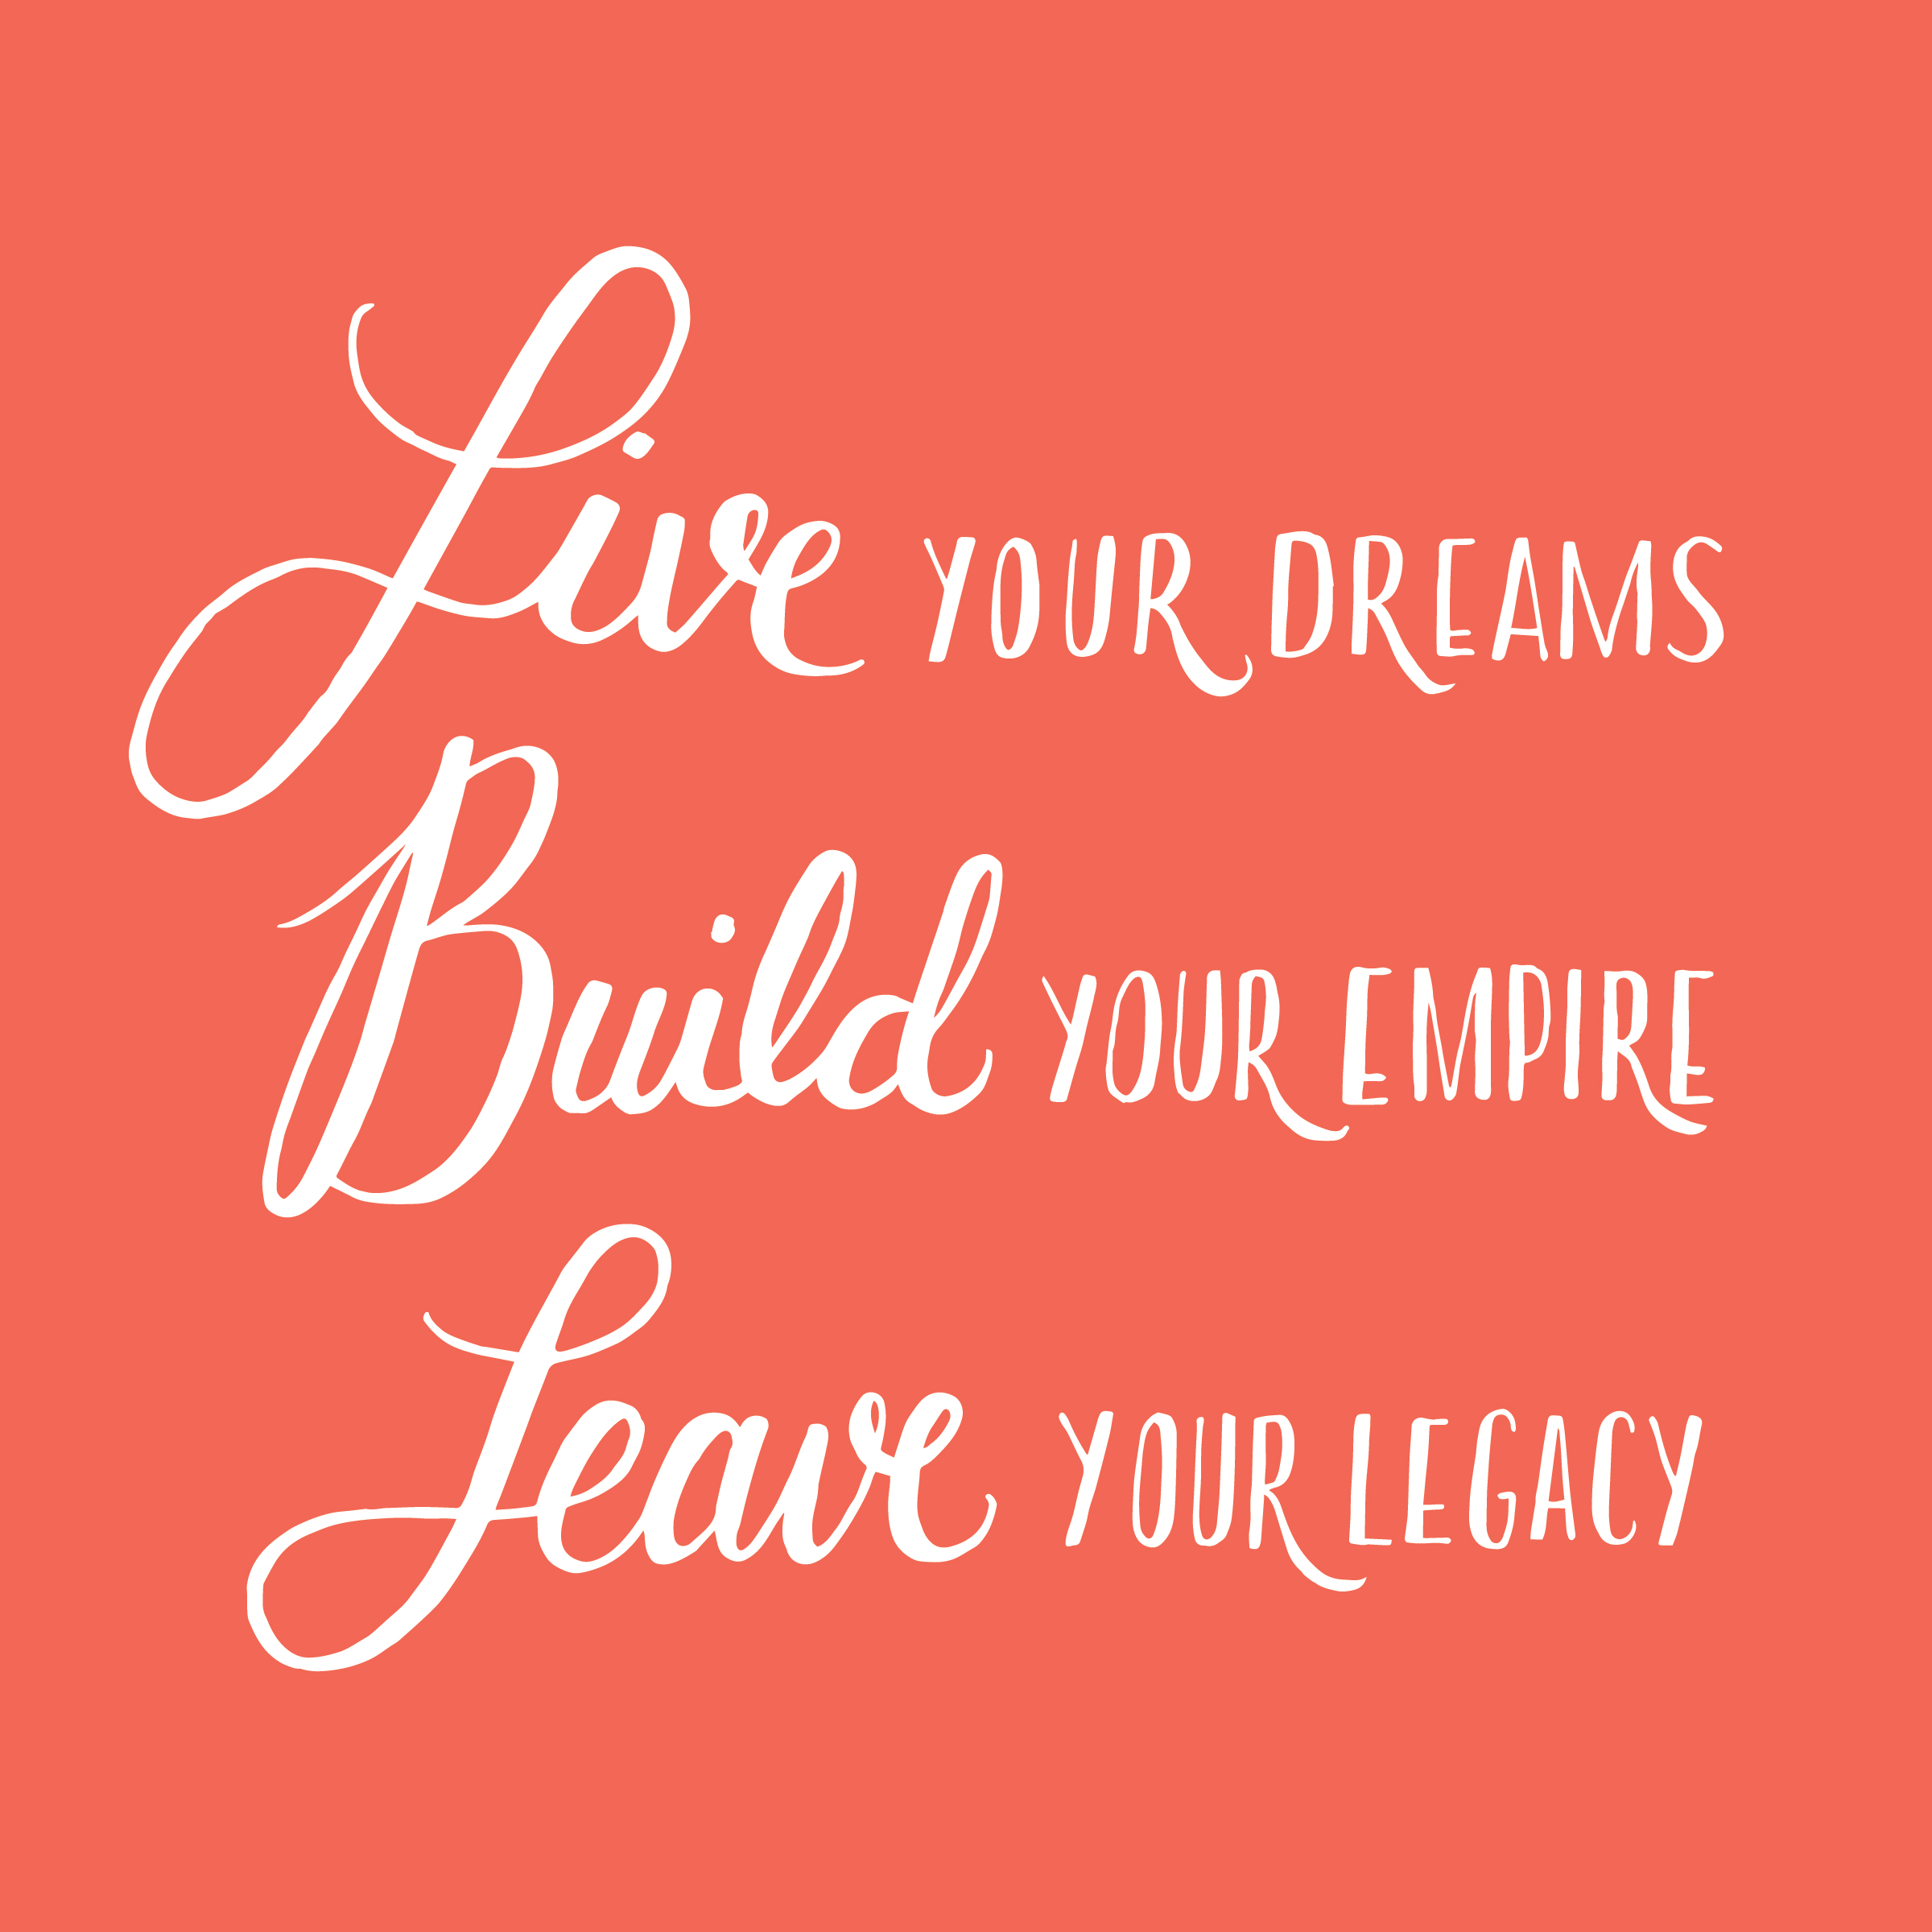 Leave Your Legacy - andreacrofts.com.jpg